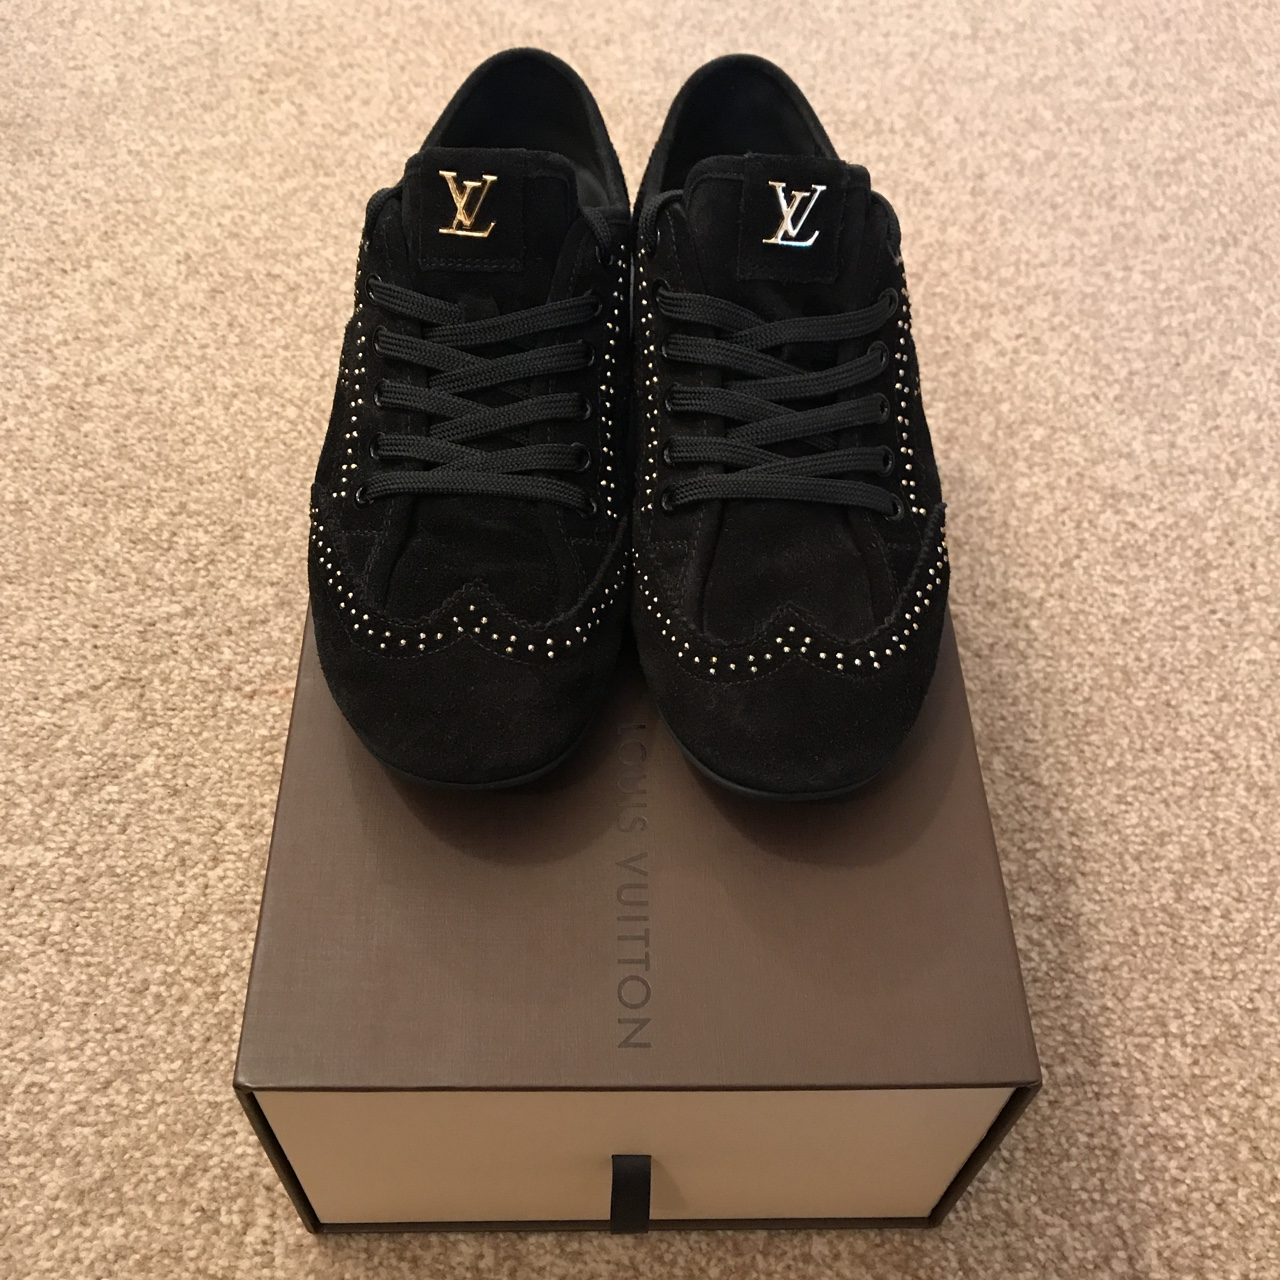 united kingdom save up to 80% wholesale sales Louis Vuitton women's black suede studded trainers... - Depop